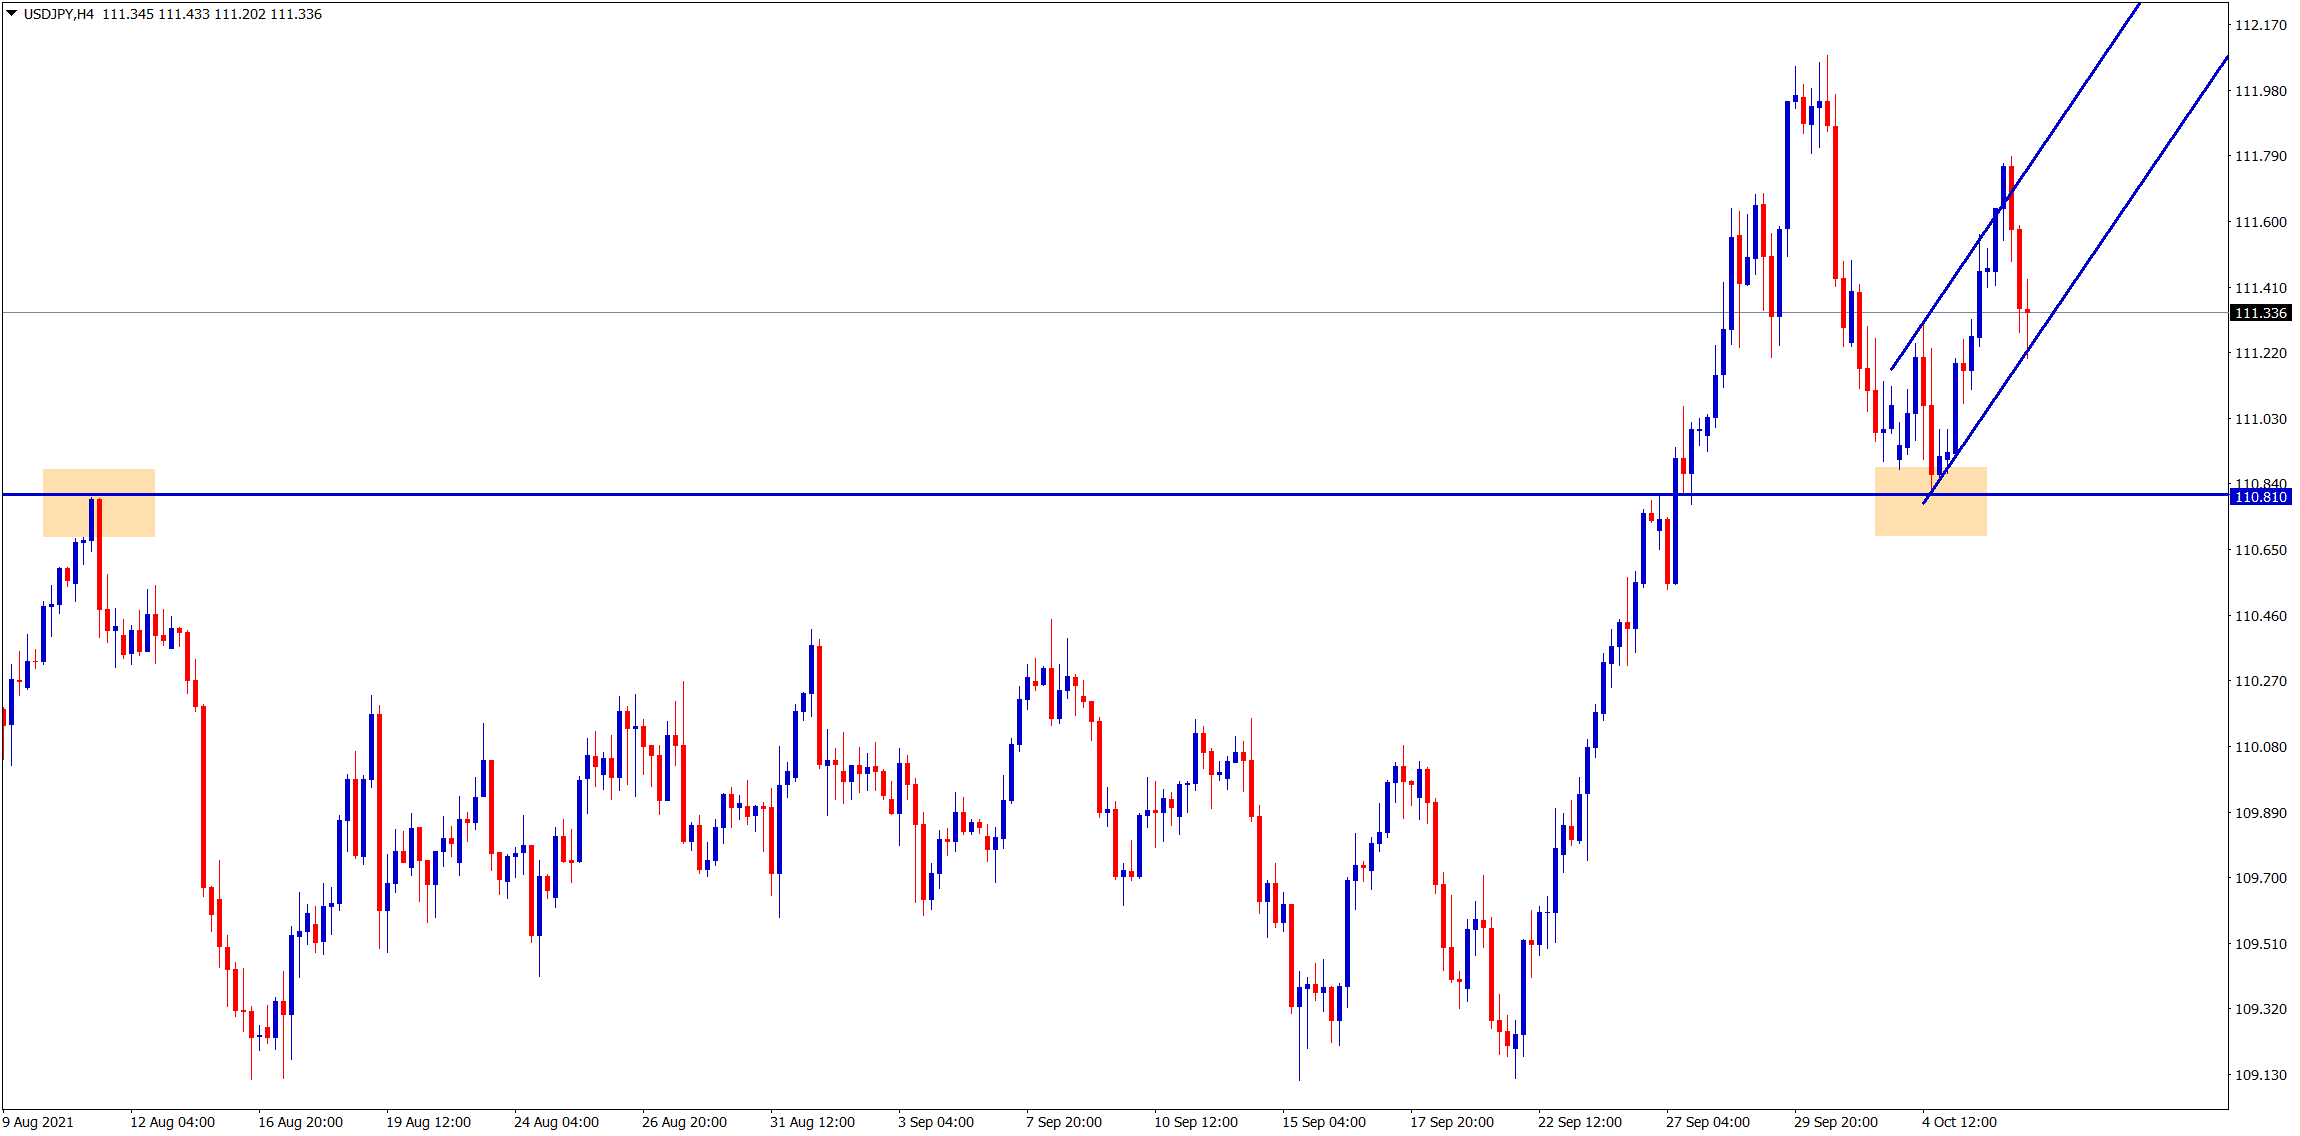 USDJPY is moving in an Ascending channel after retesting the broken resistance which act as a new support level